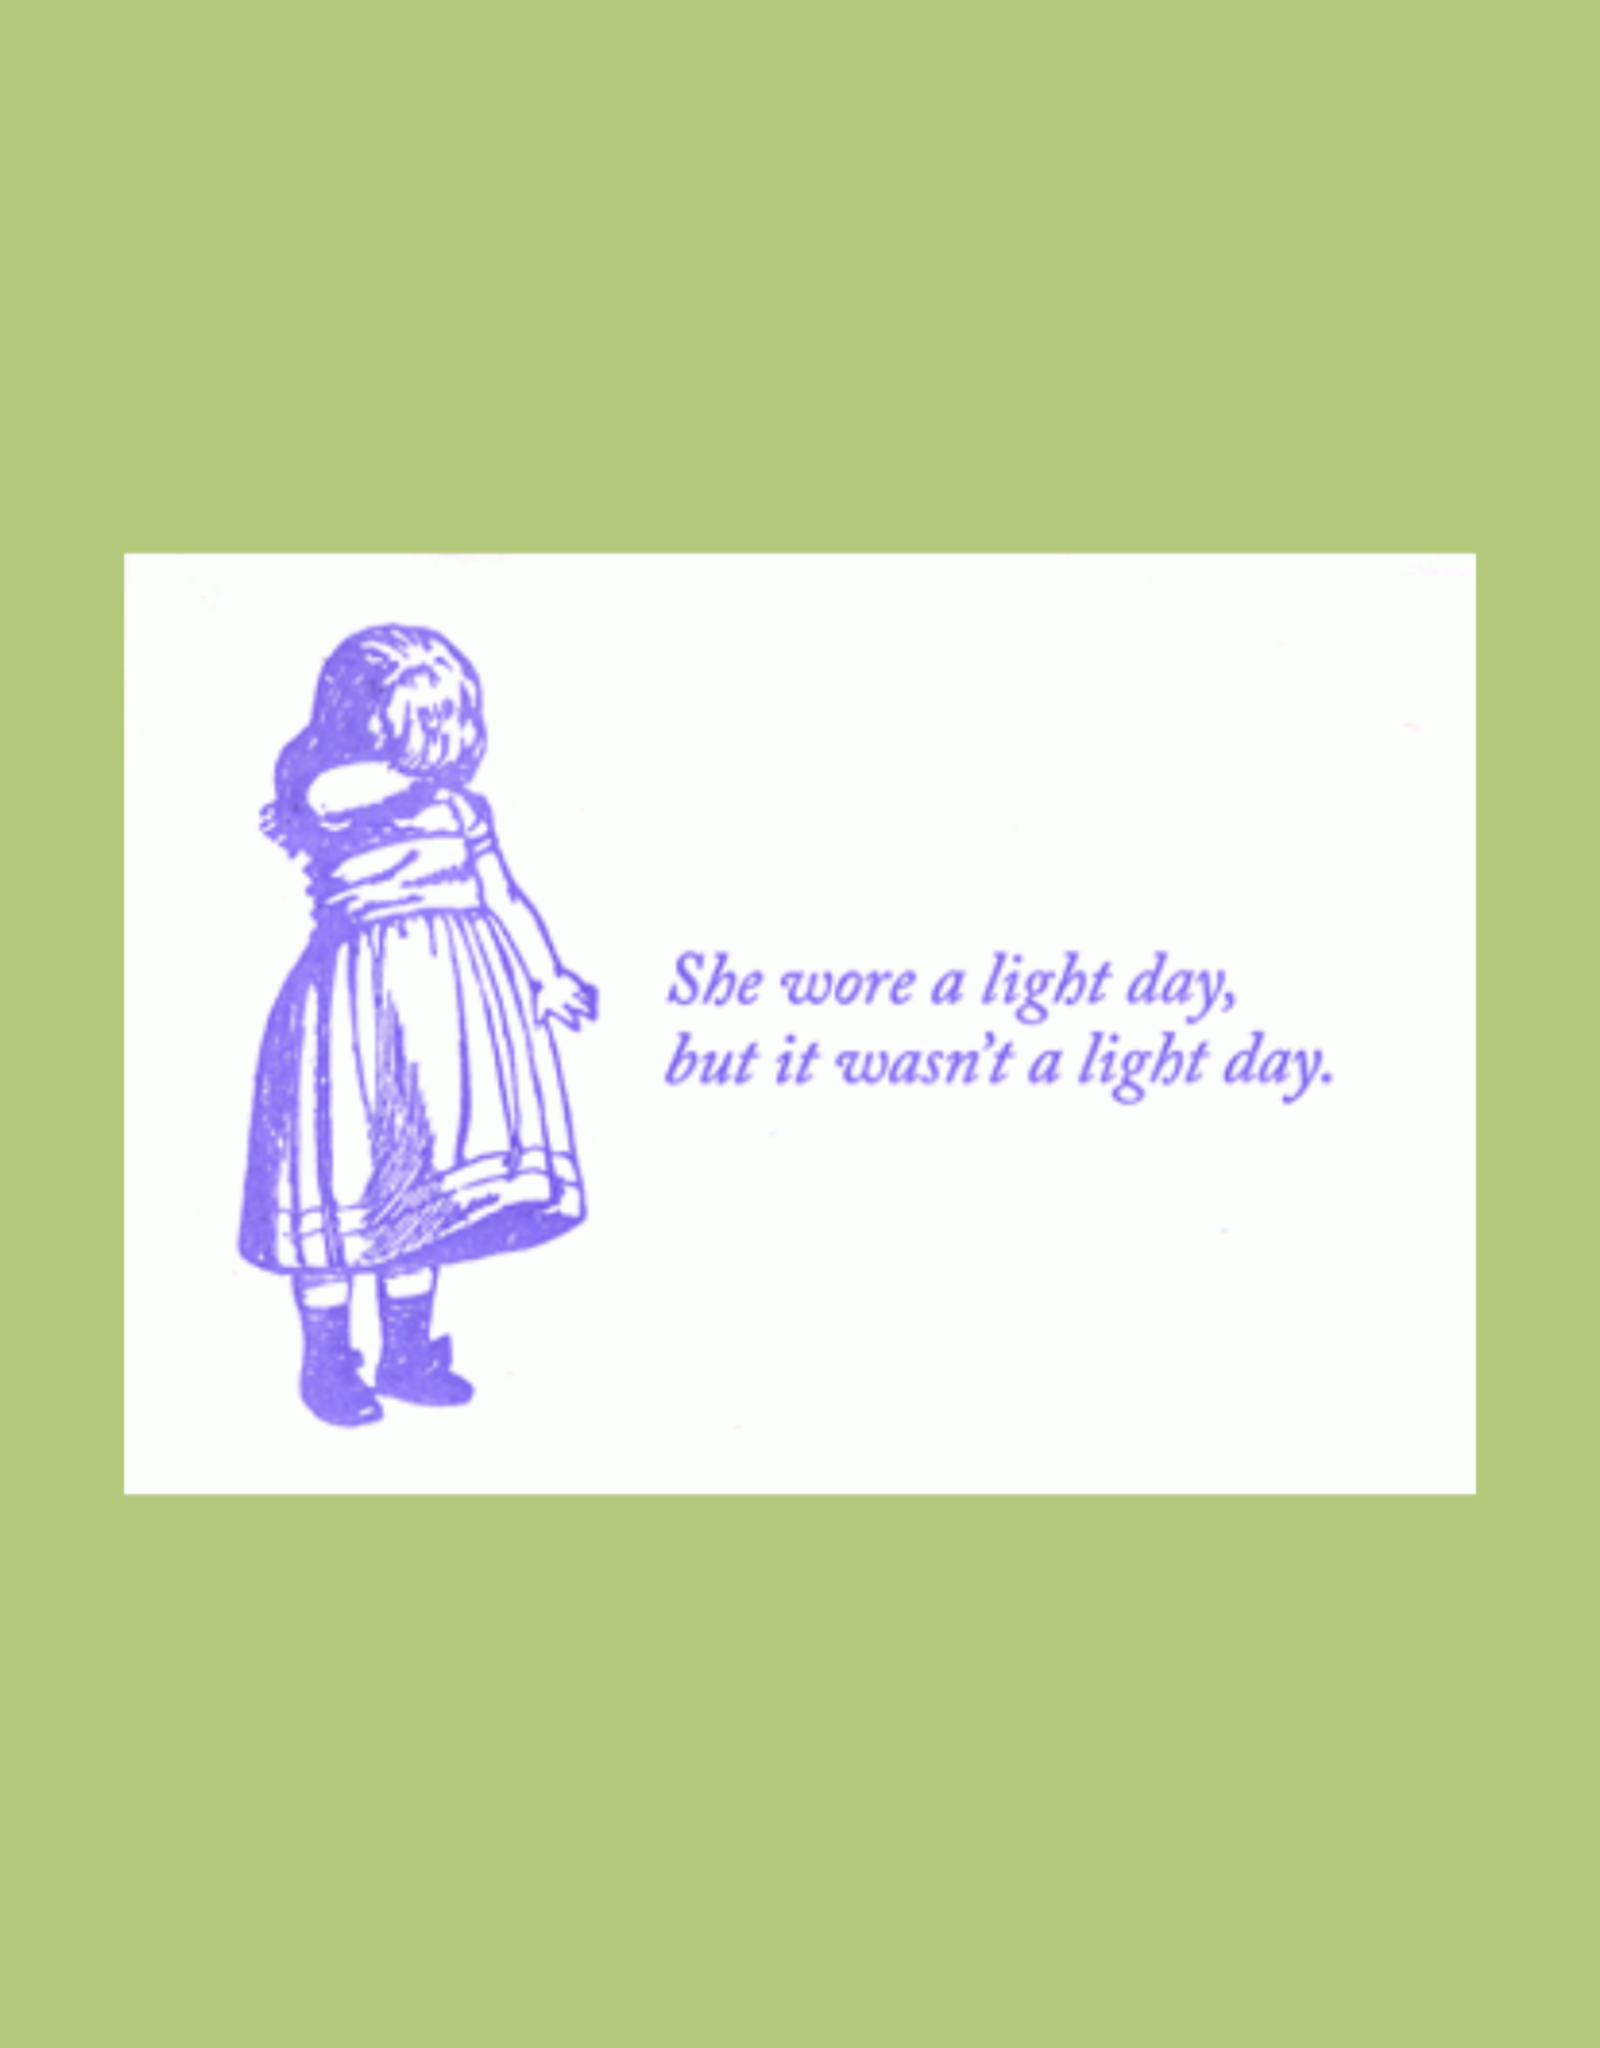 Blue Barnhouse She Wore a Light Day Humorous Card